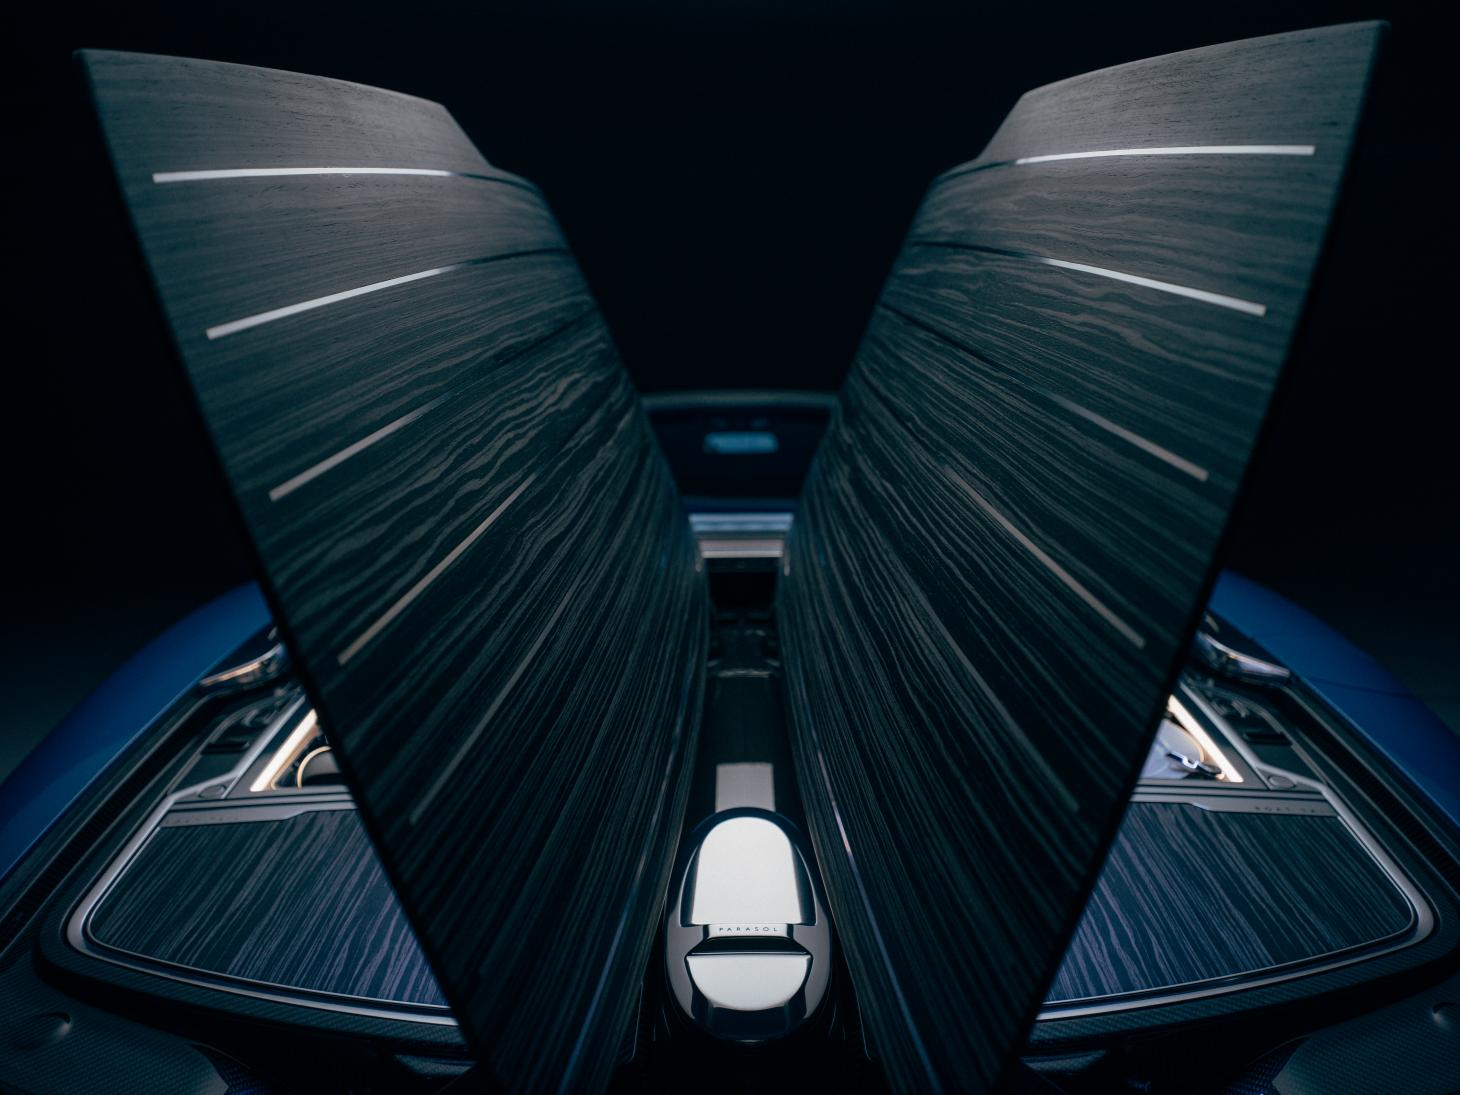 The folding doors in the rear deck of the Rolls-Royce Boat Tail